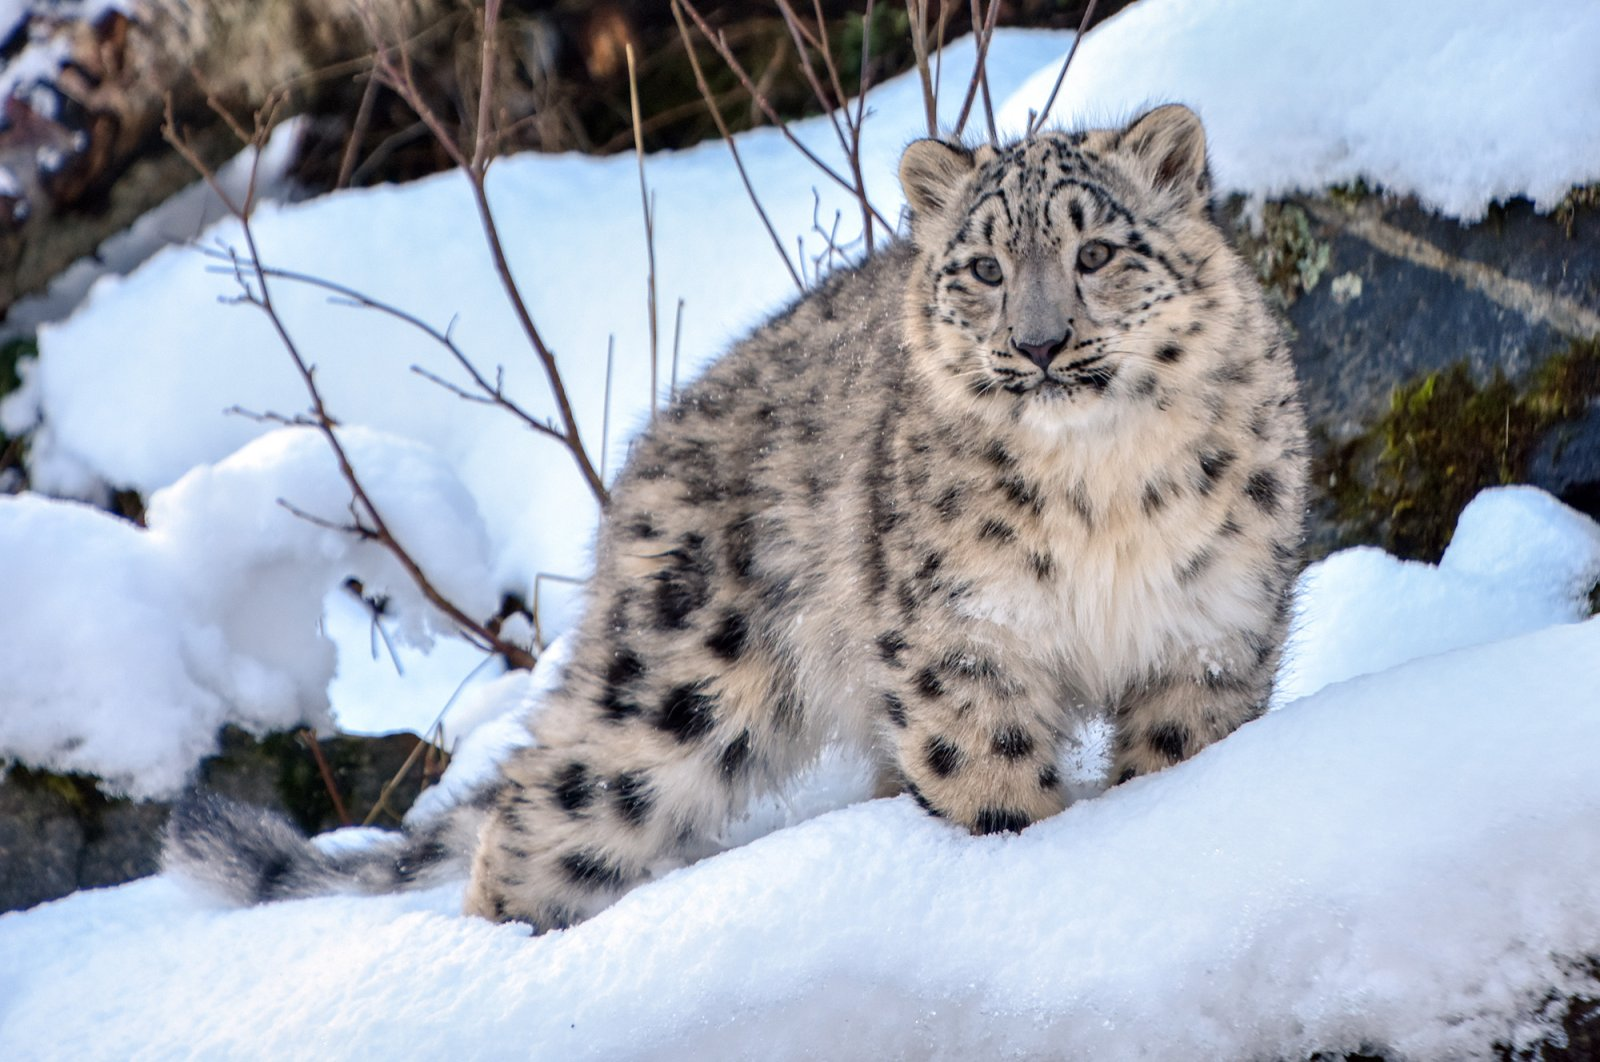 Leannain and Stardust, the 7-month-old snow leopard cubs at the Royal Zoological Society of Scotland's Highland Wildlife Park, have been enjoying the winter weather at their home in Cairngorms National Park. (Reuters File Photo)